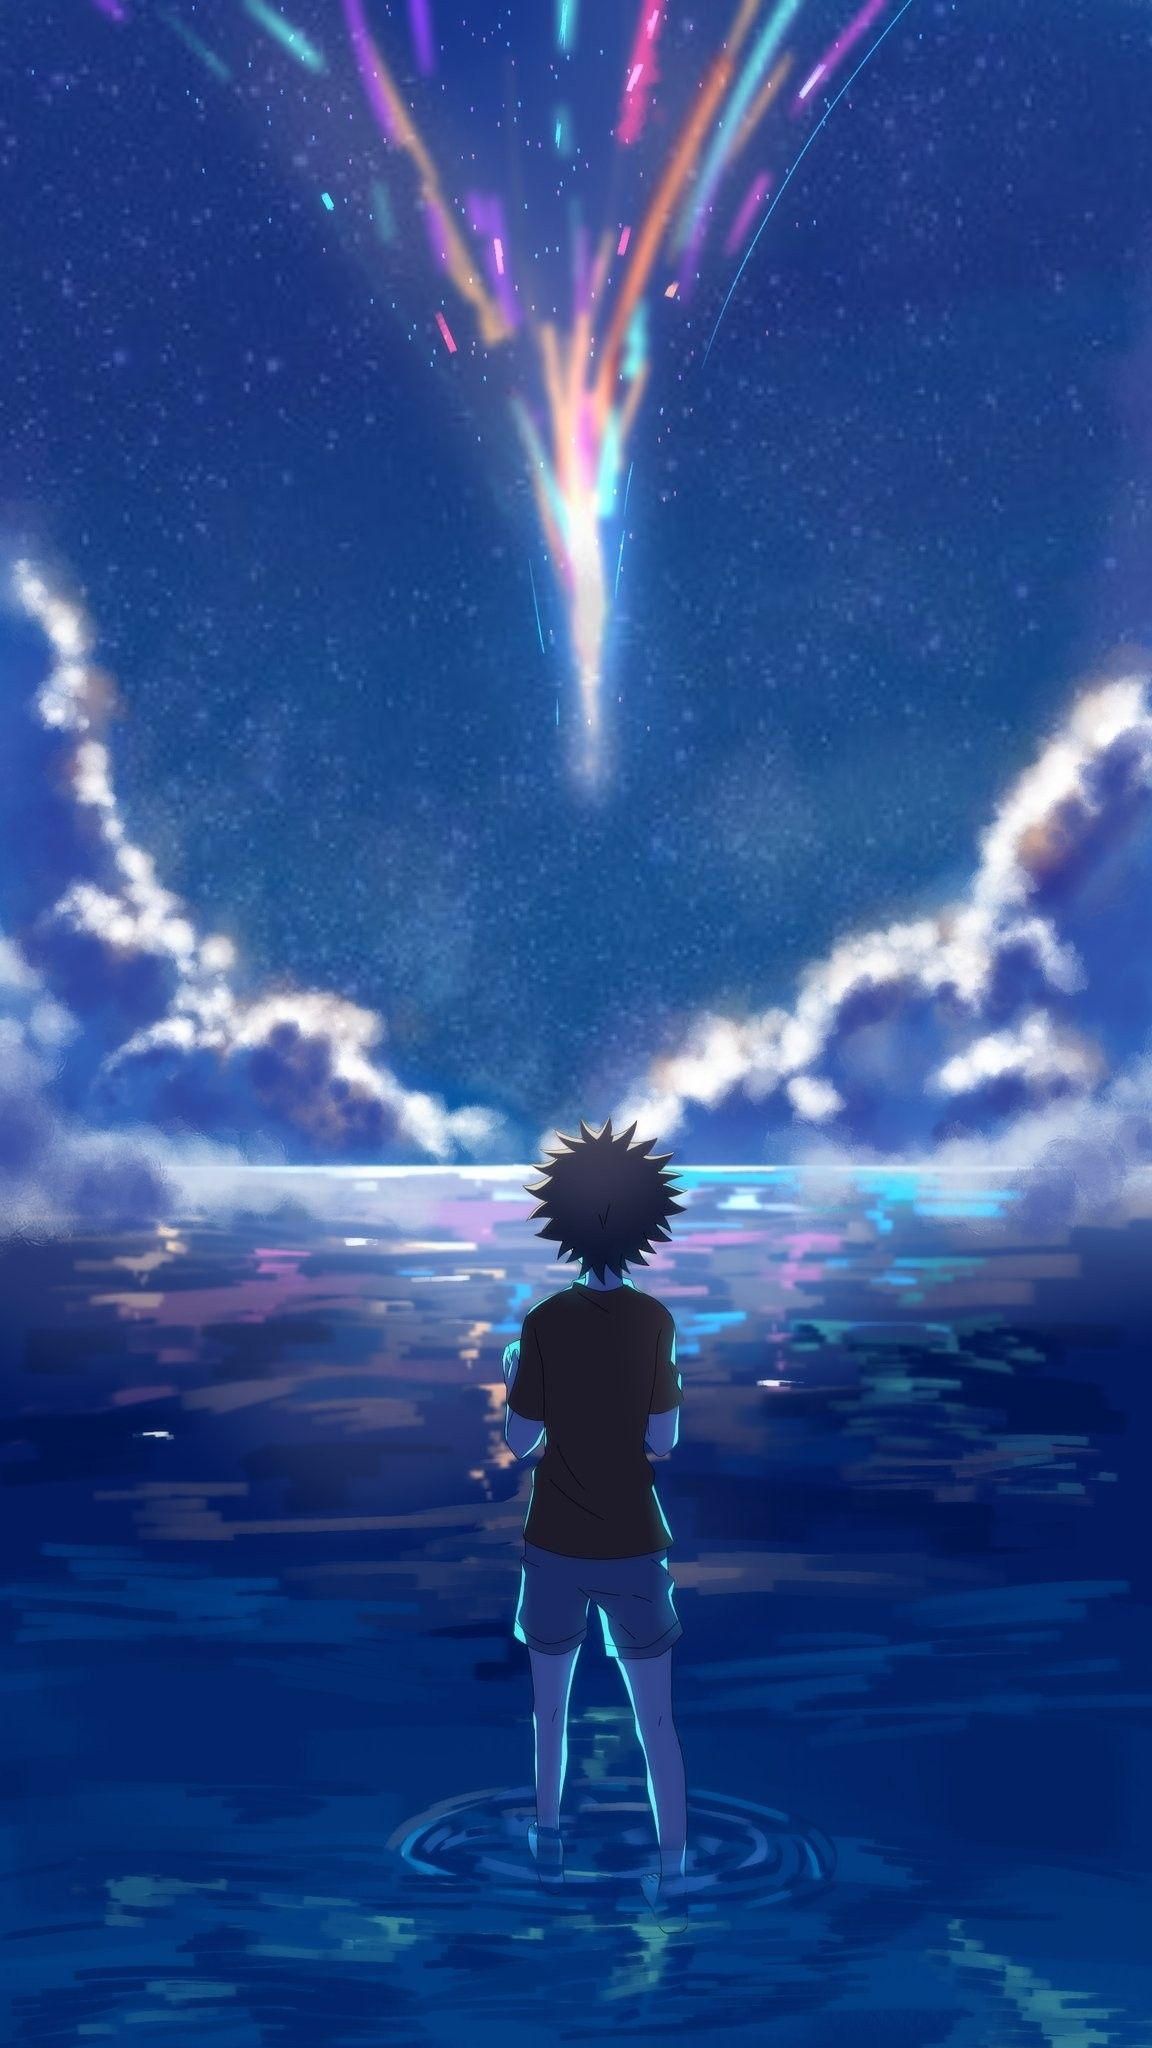 Pin by yuuchan 3 on a certain magical index 2 in 2020